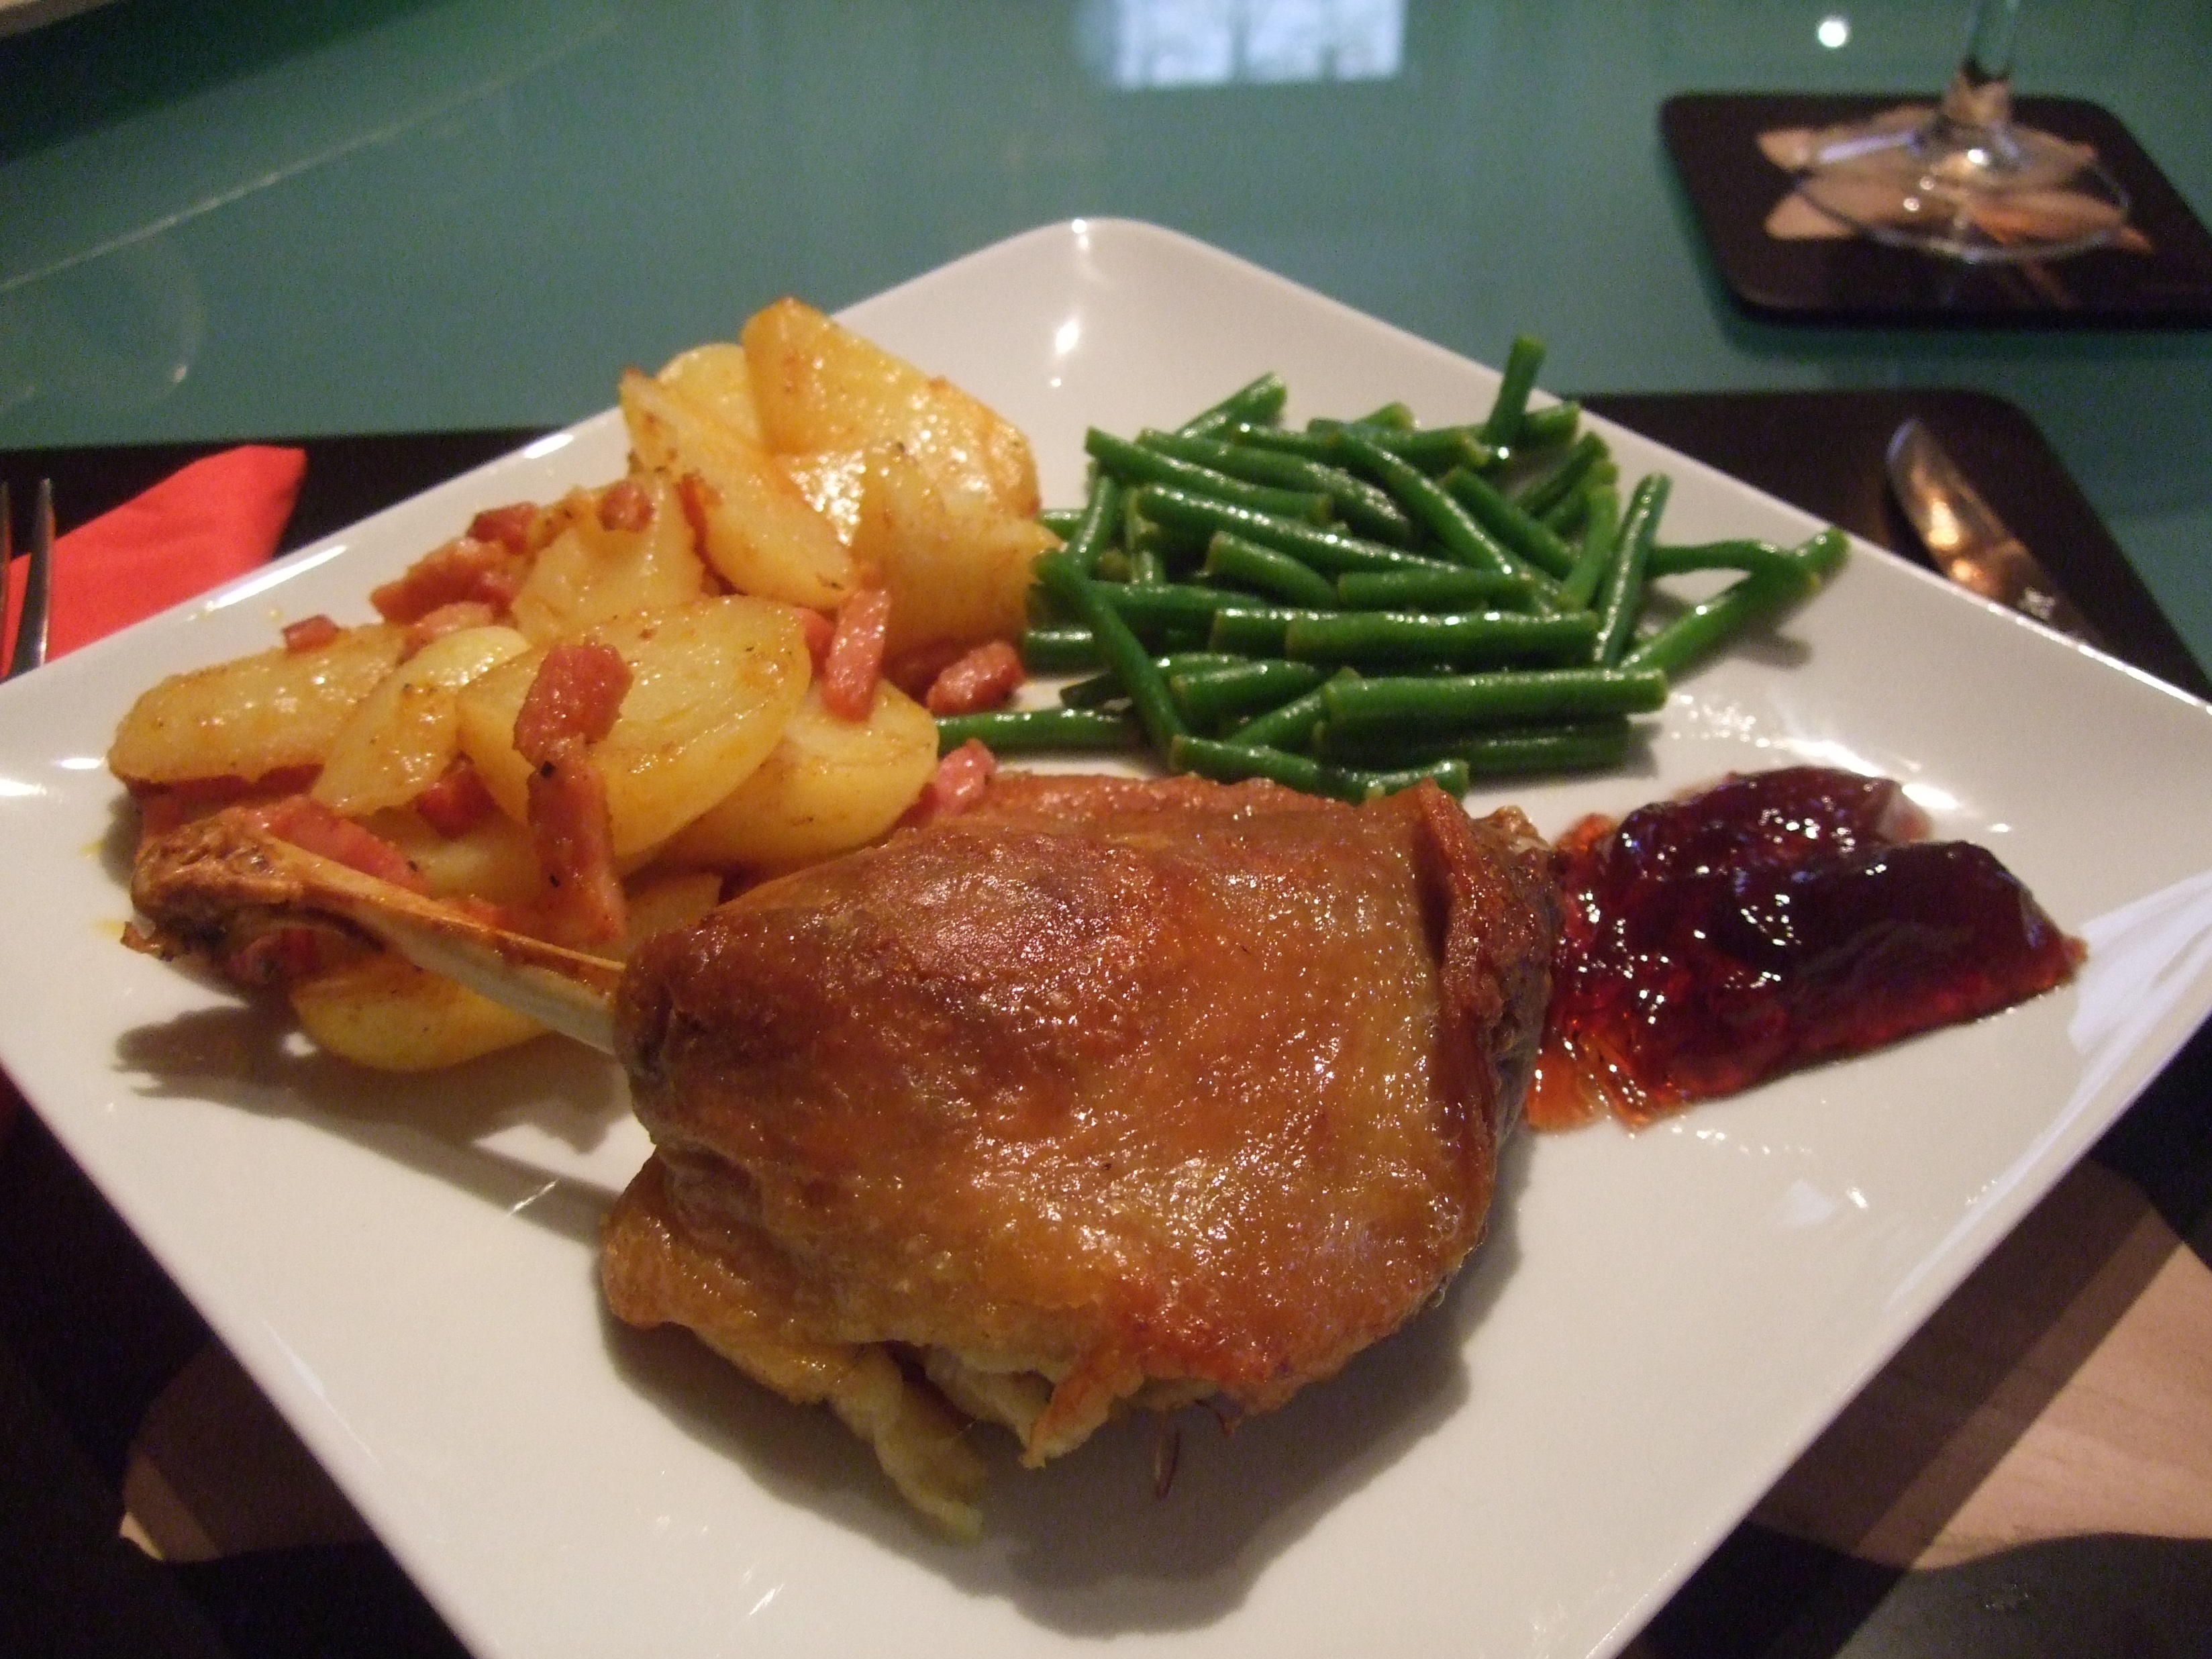 This is how confit de canard should look.